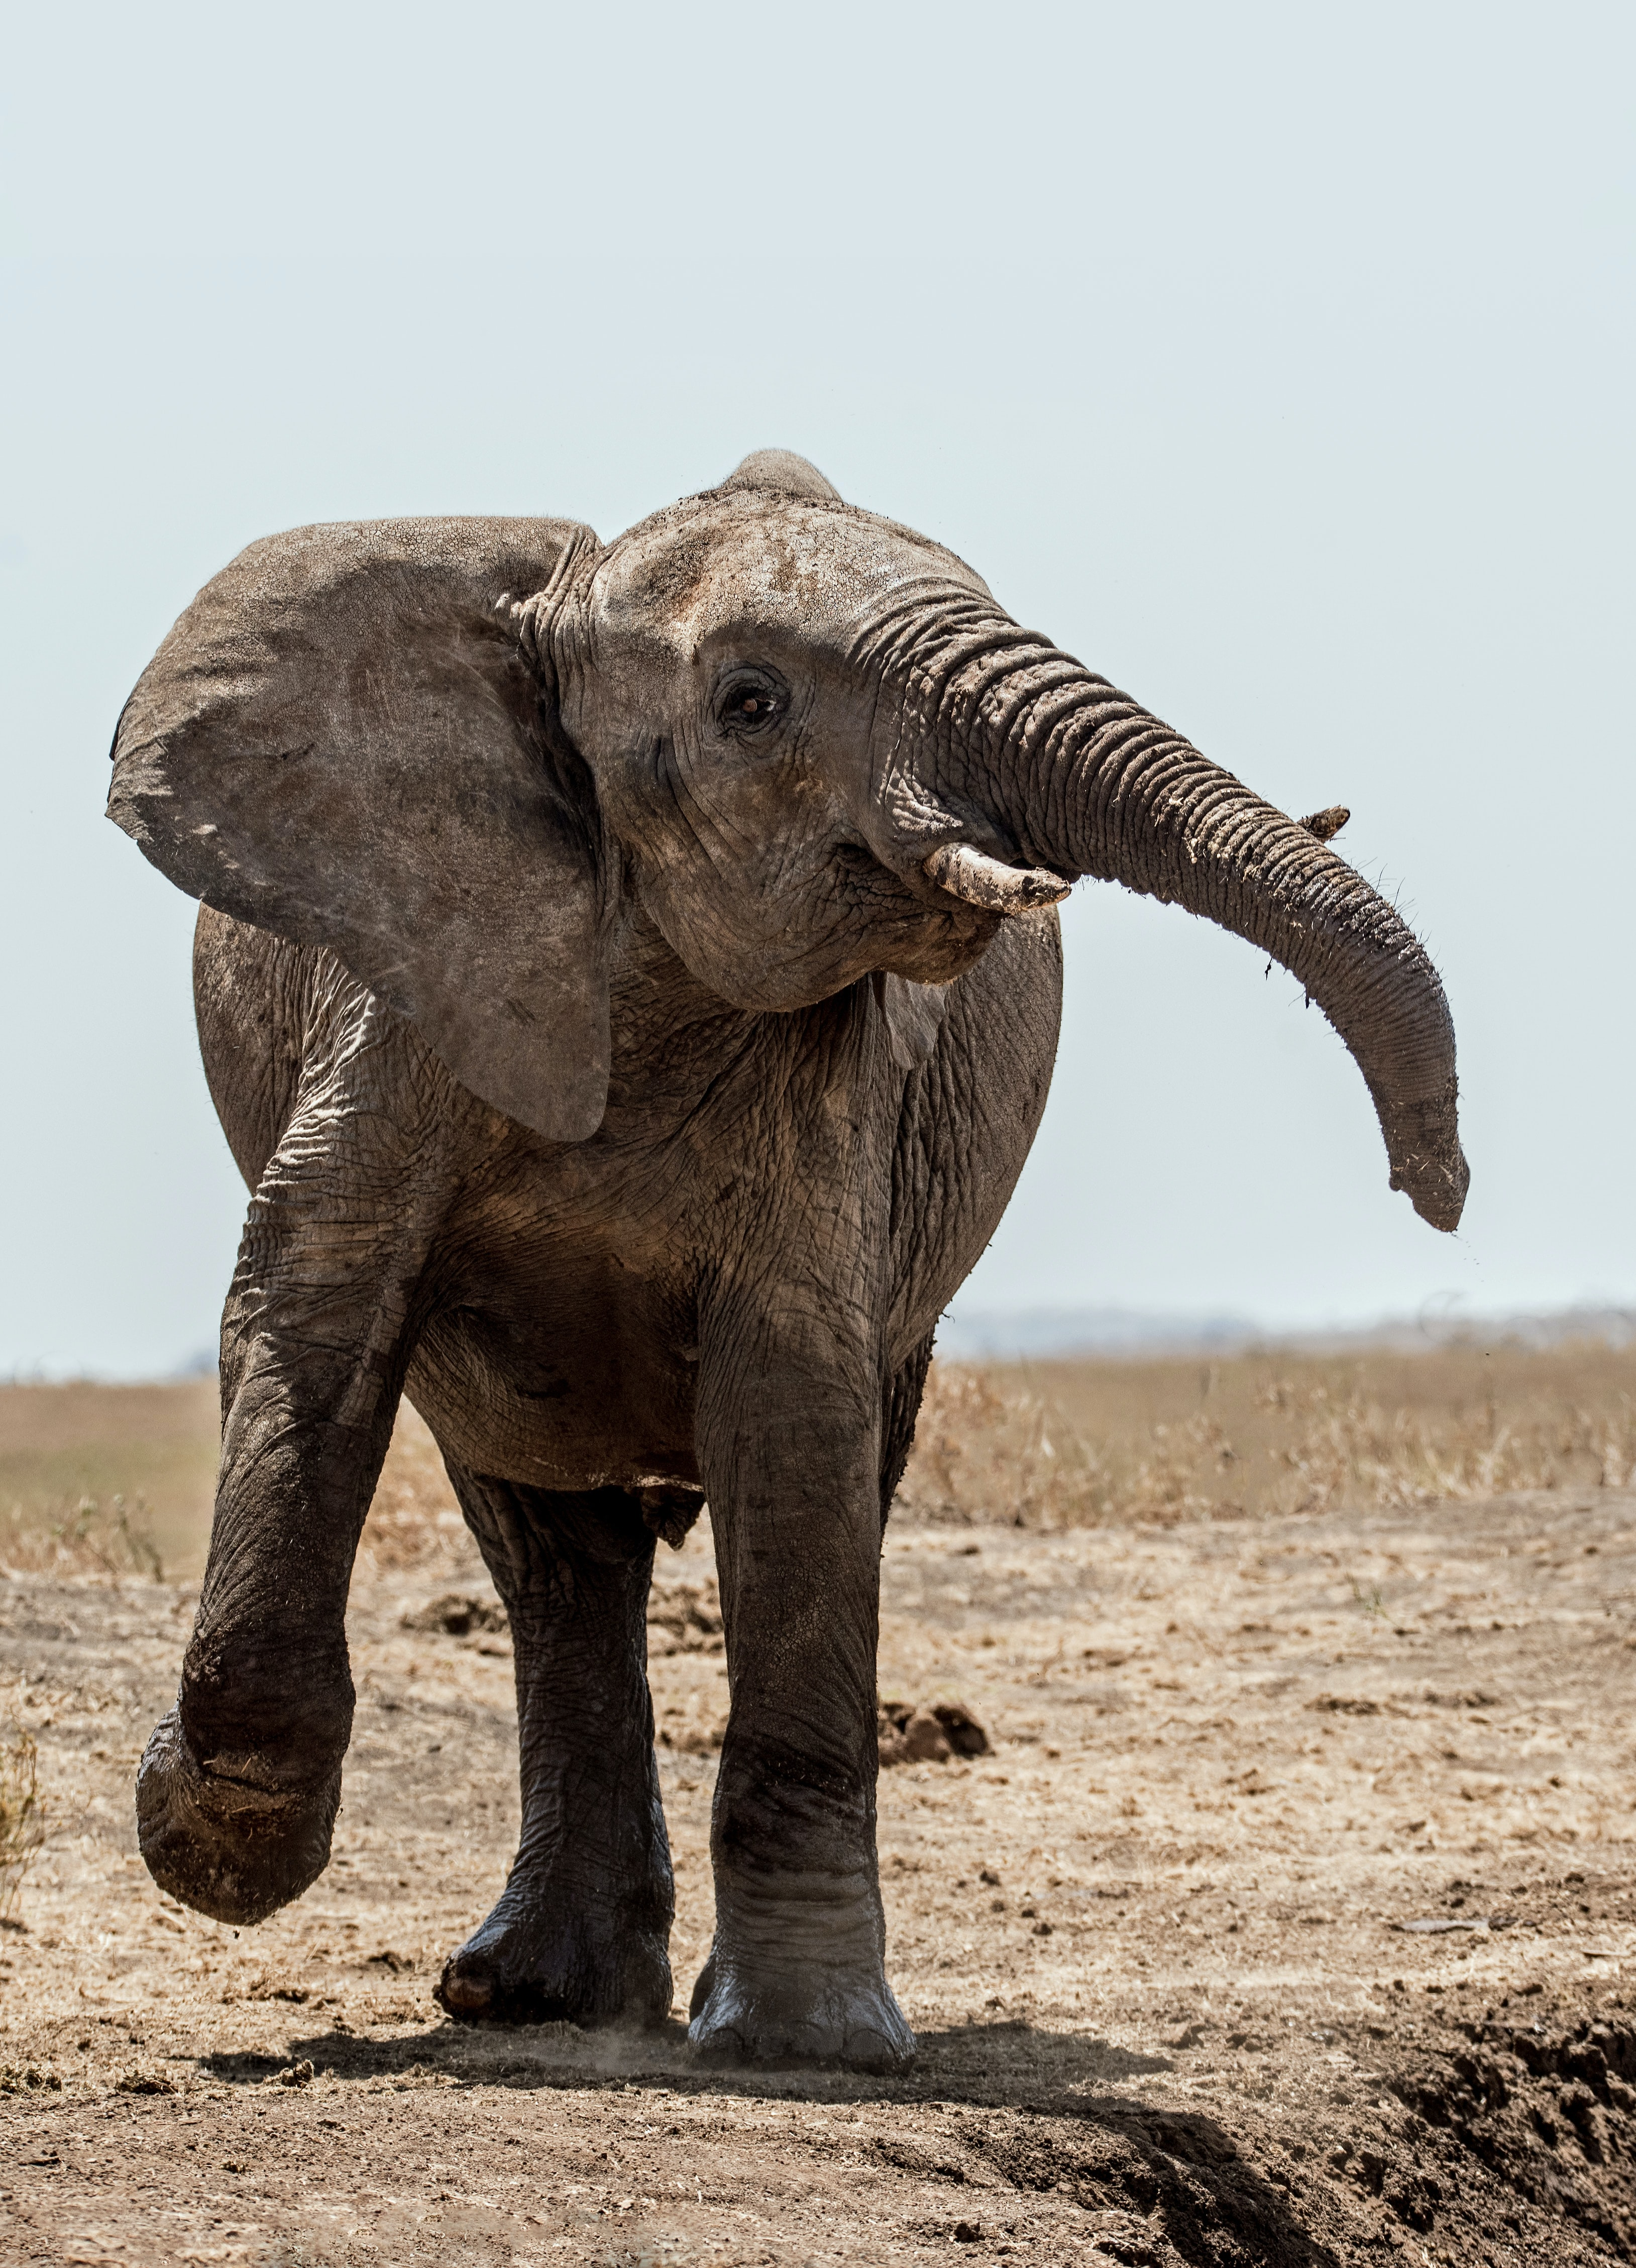 elephant walking on soil